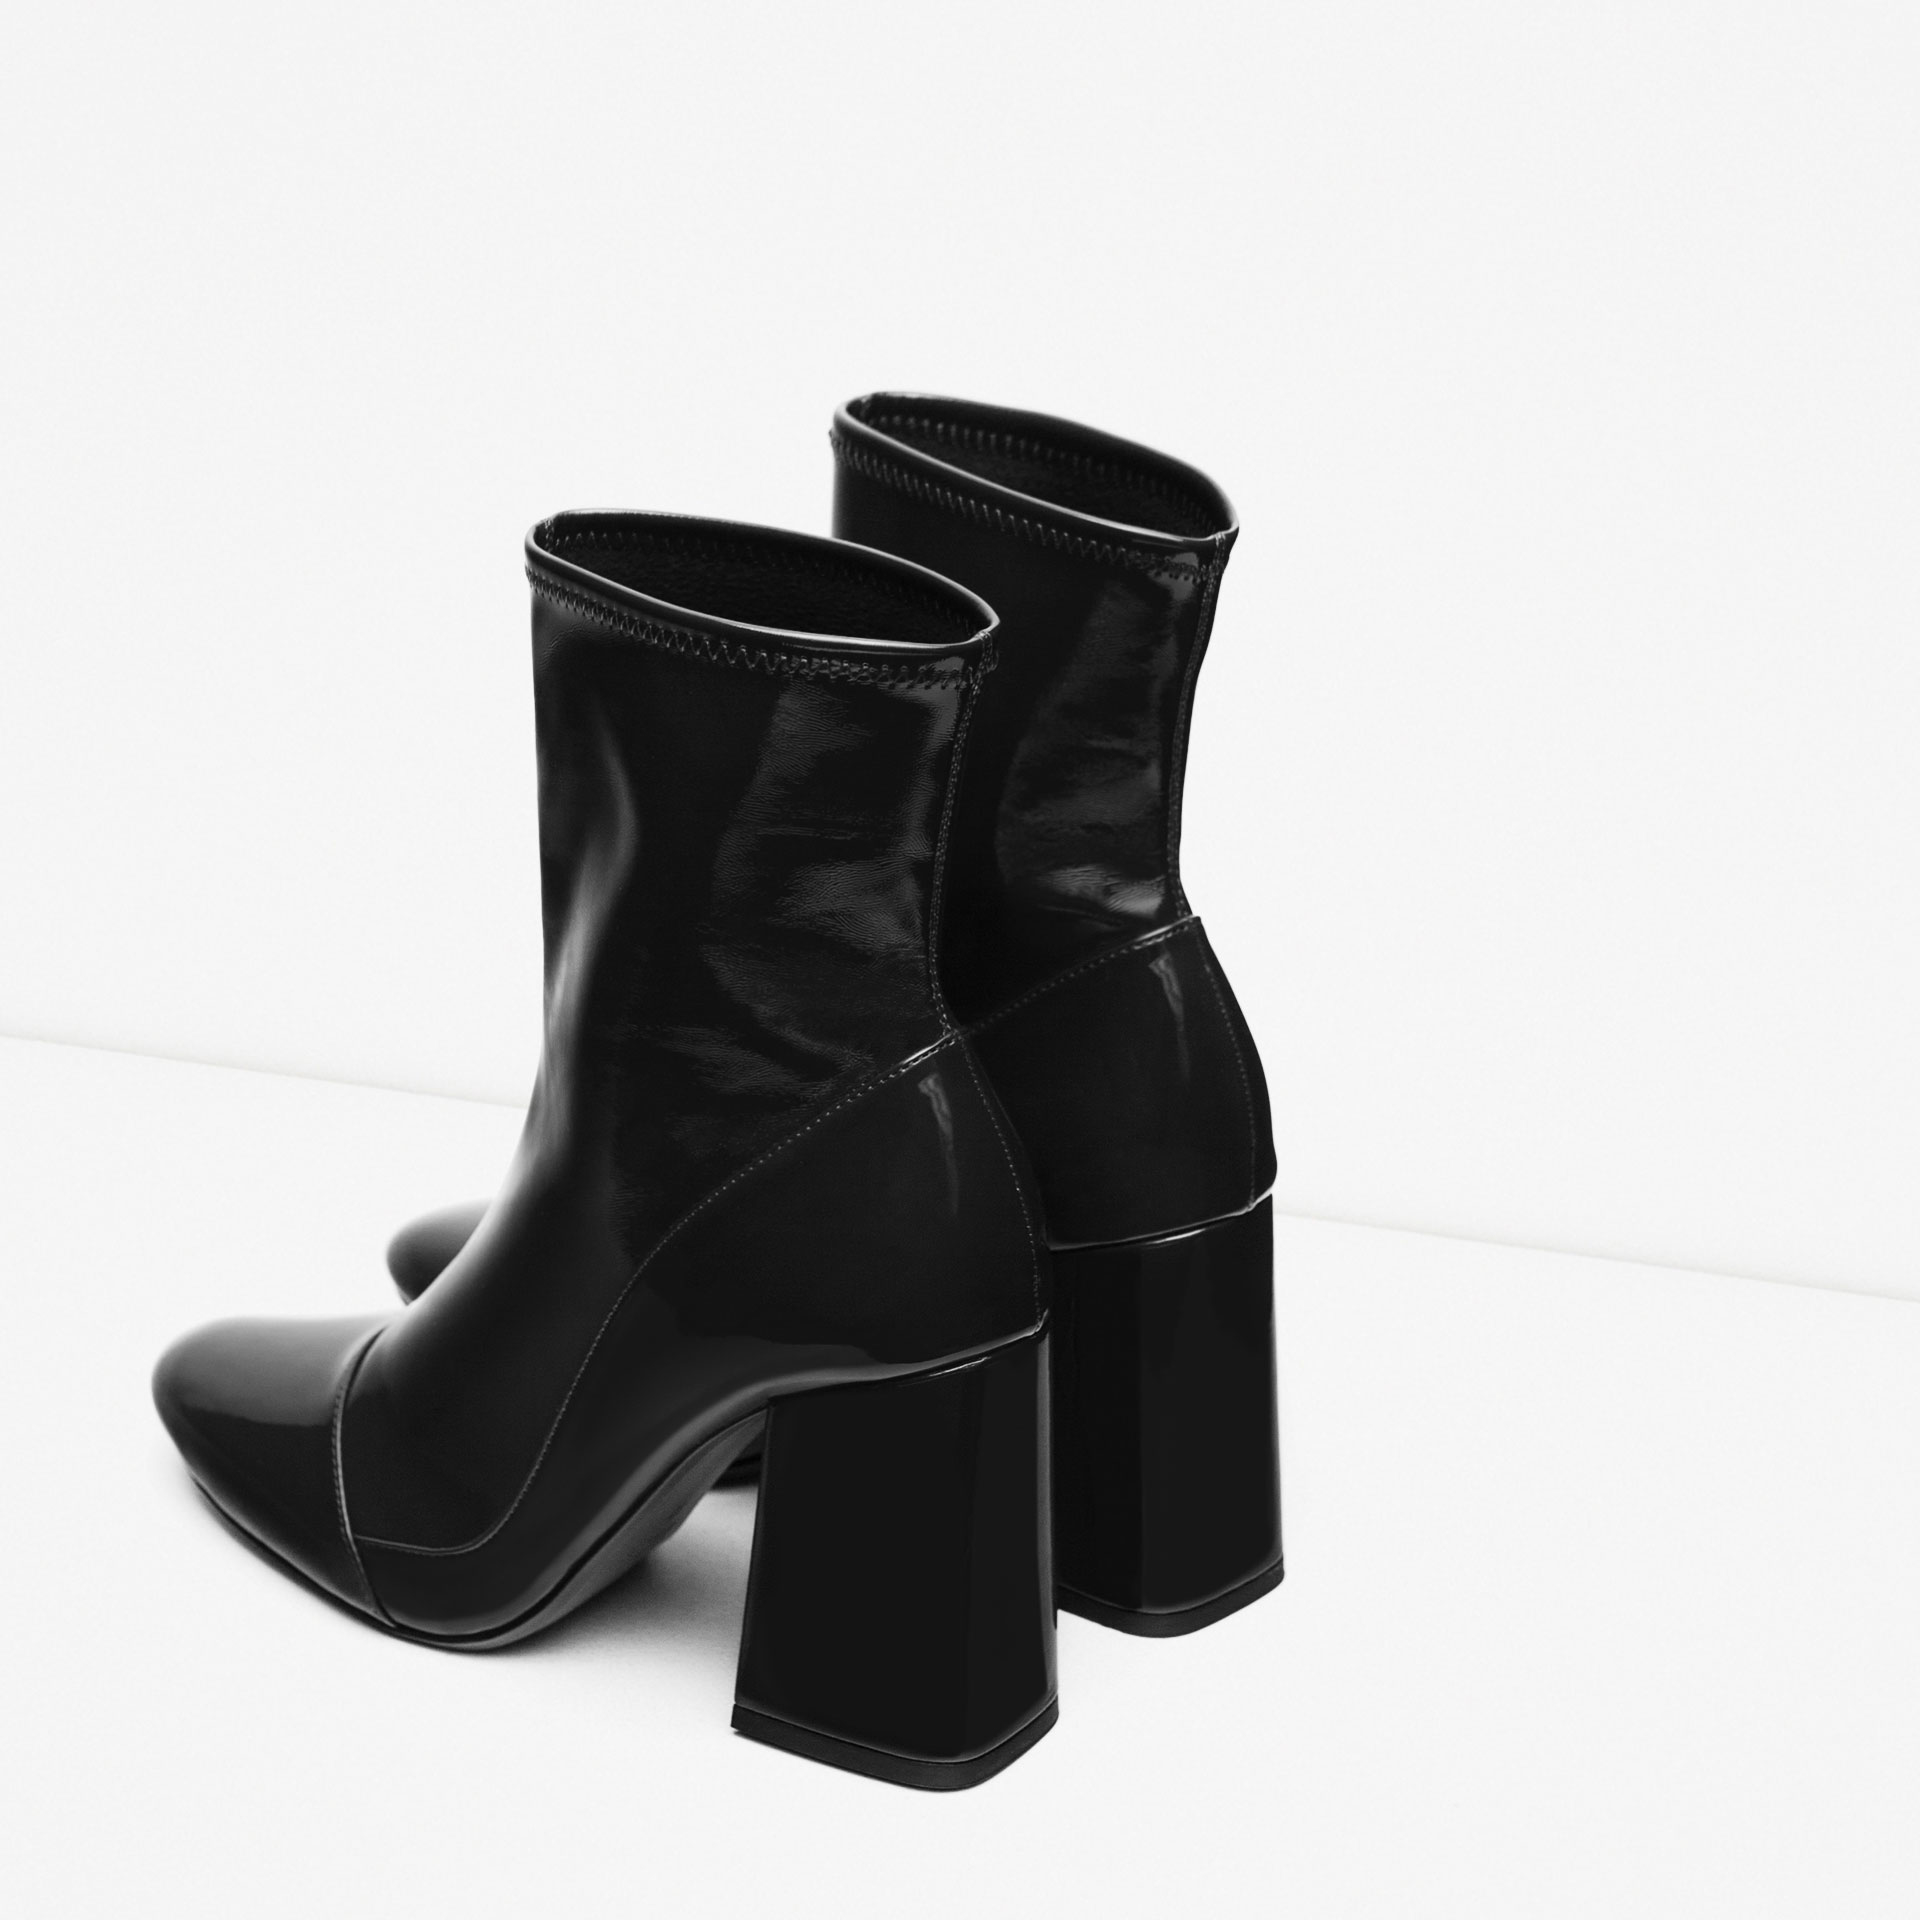 Zara High Heel Sock Style Ankle Boots in Black | Lyst